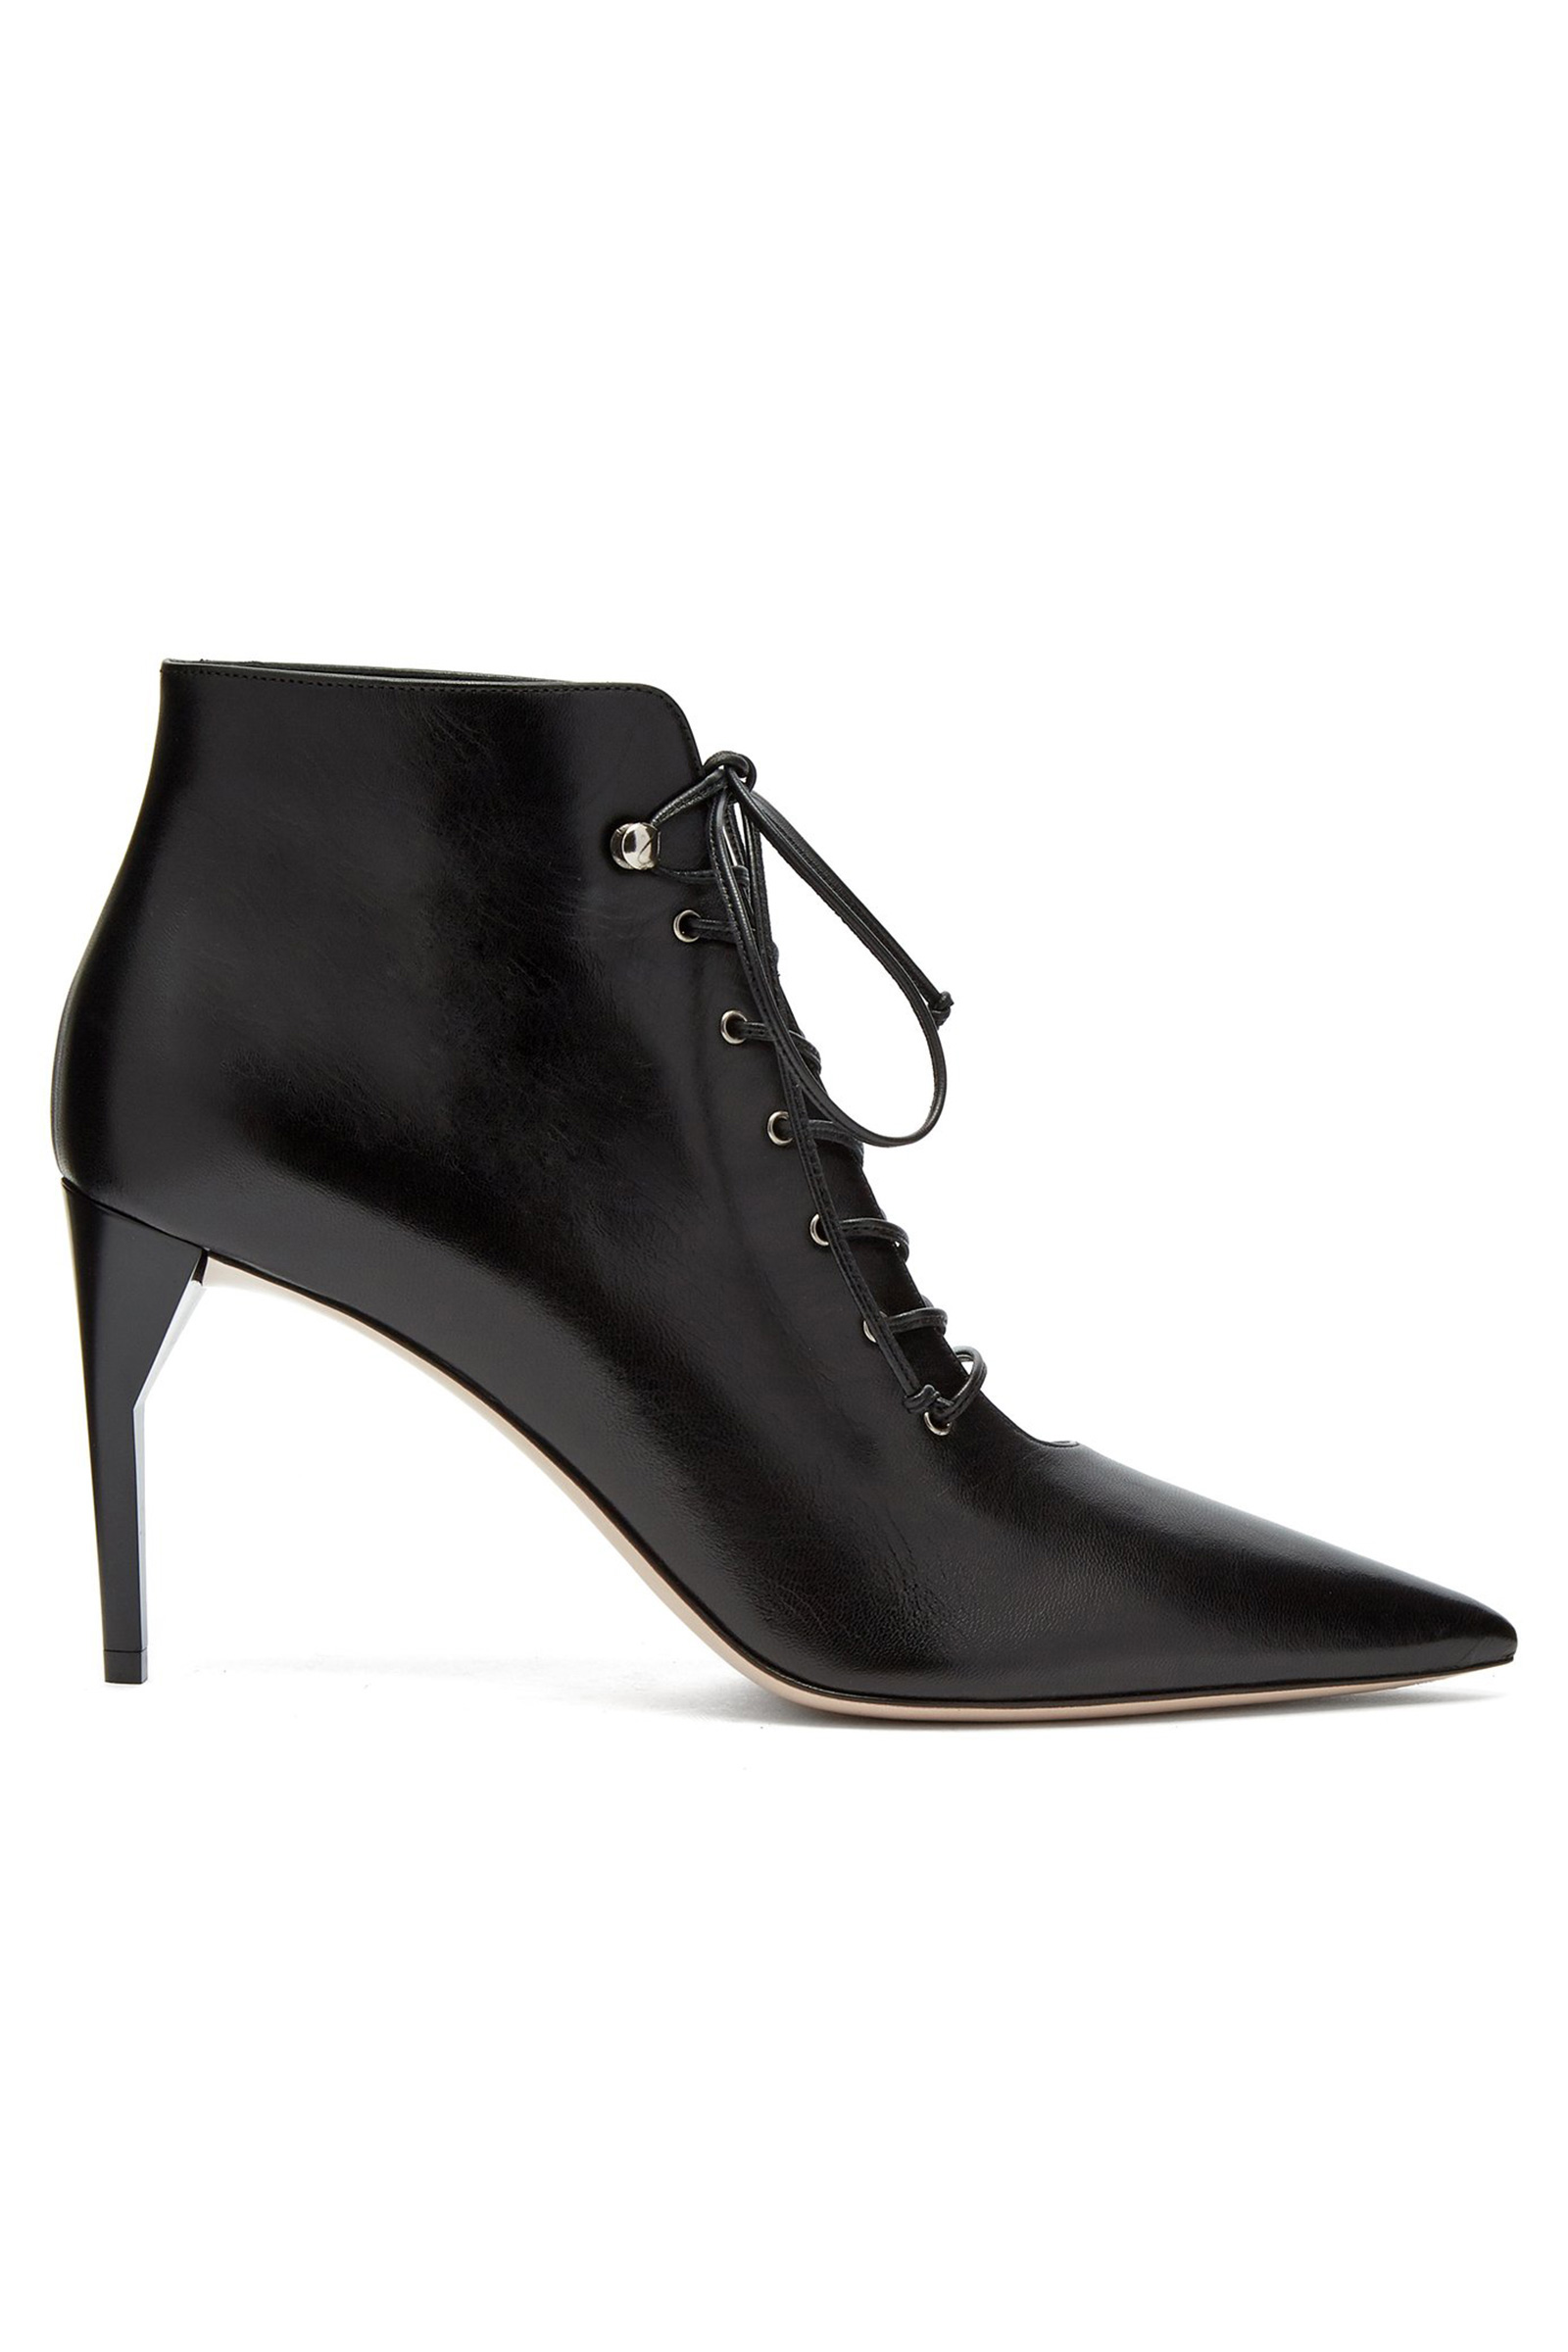 Lace up leather ankle boots | Miu Miu